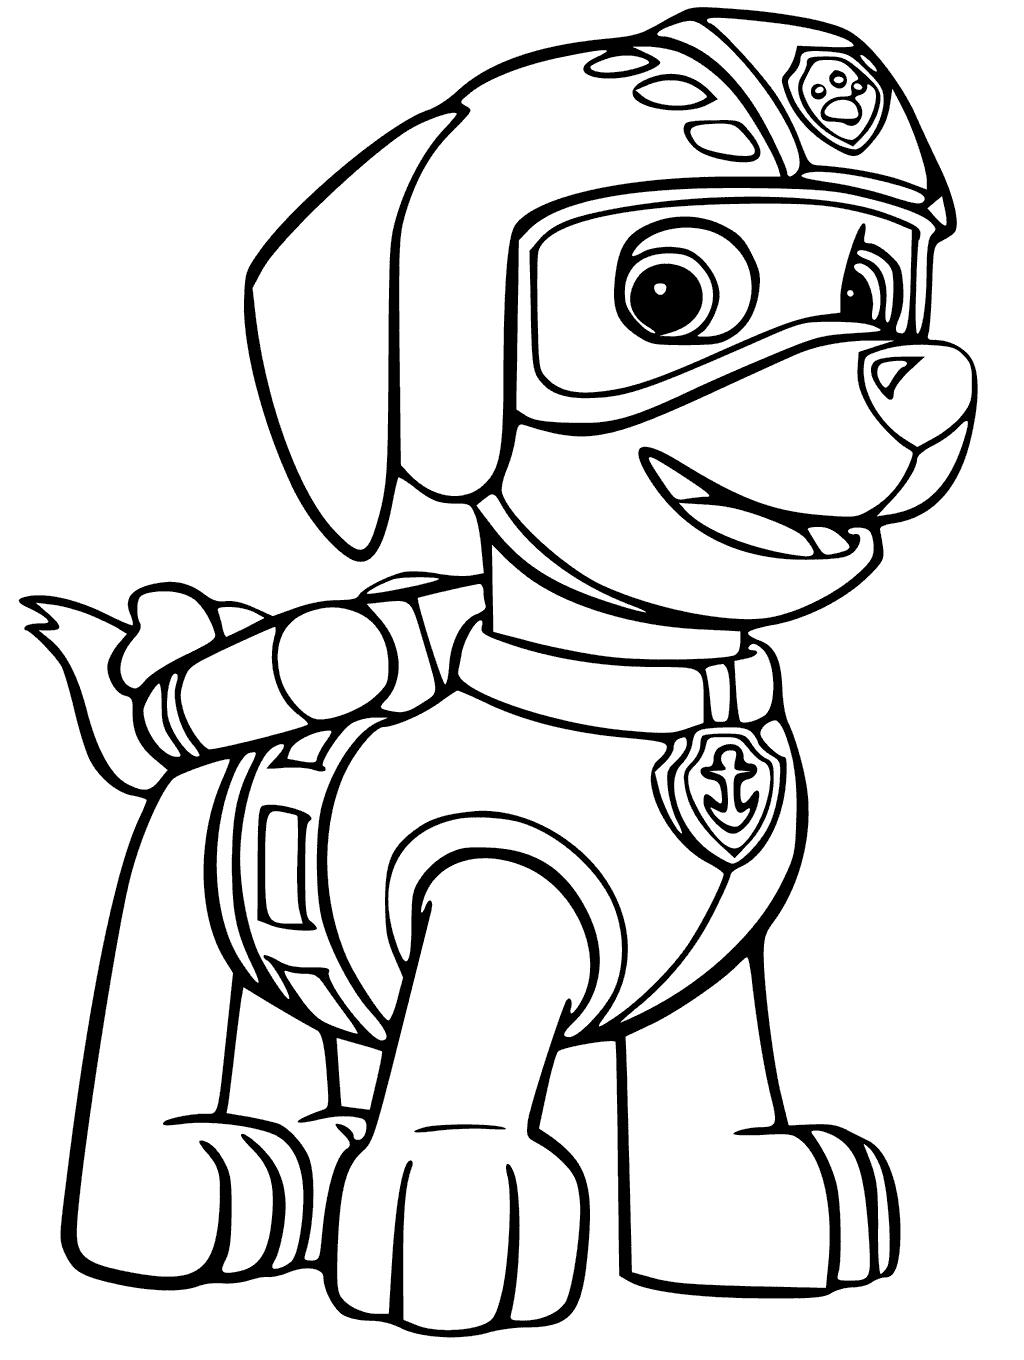 paw patrol coloring book get this paw patrol preschool coloring pages to print patrol book coloring paw